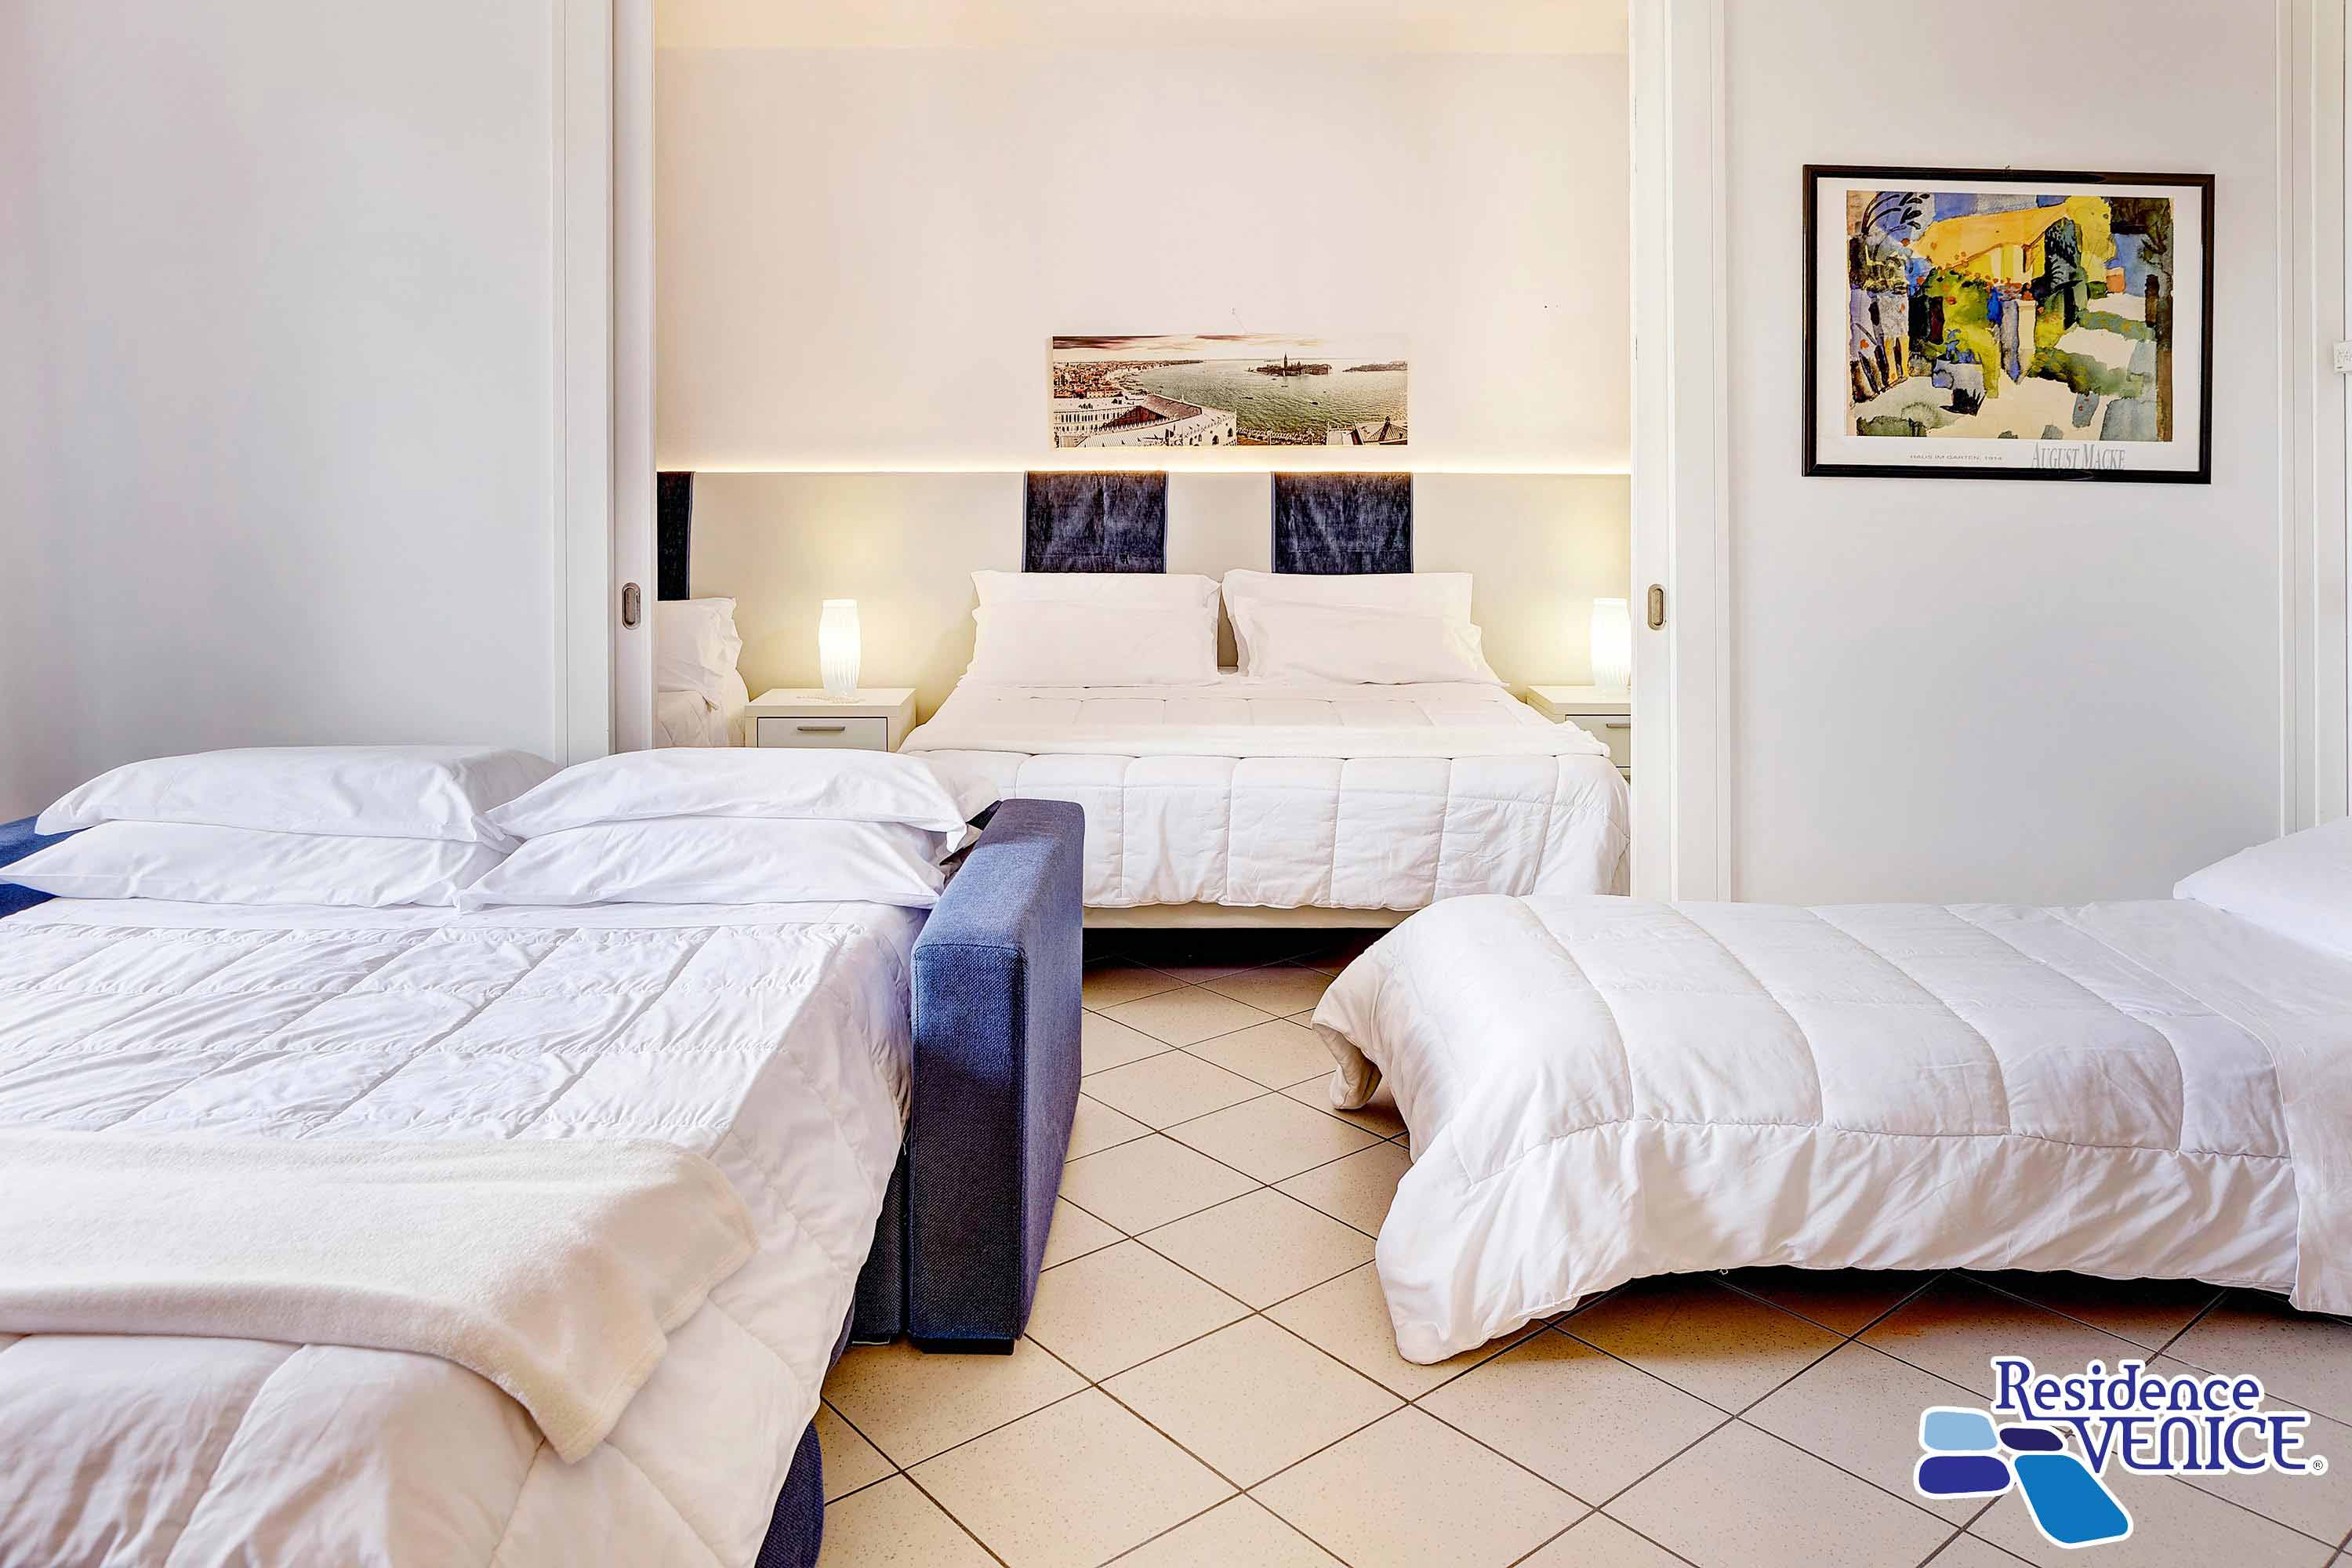 Residence Venice Luxury Family Apartment 5